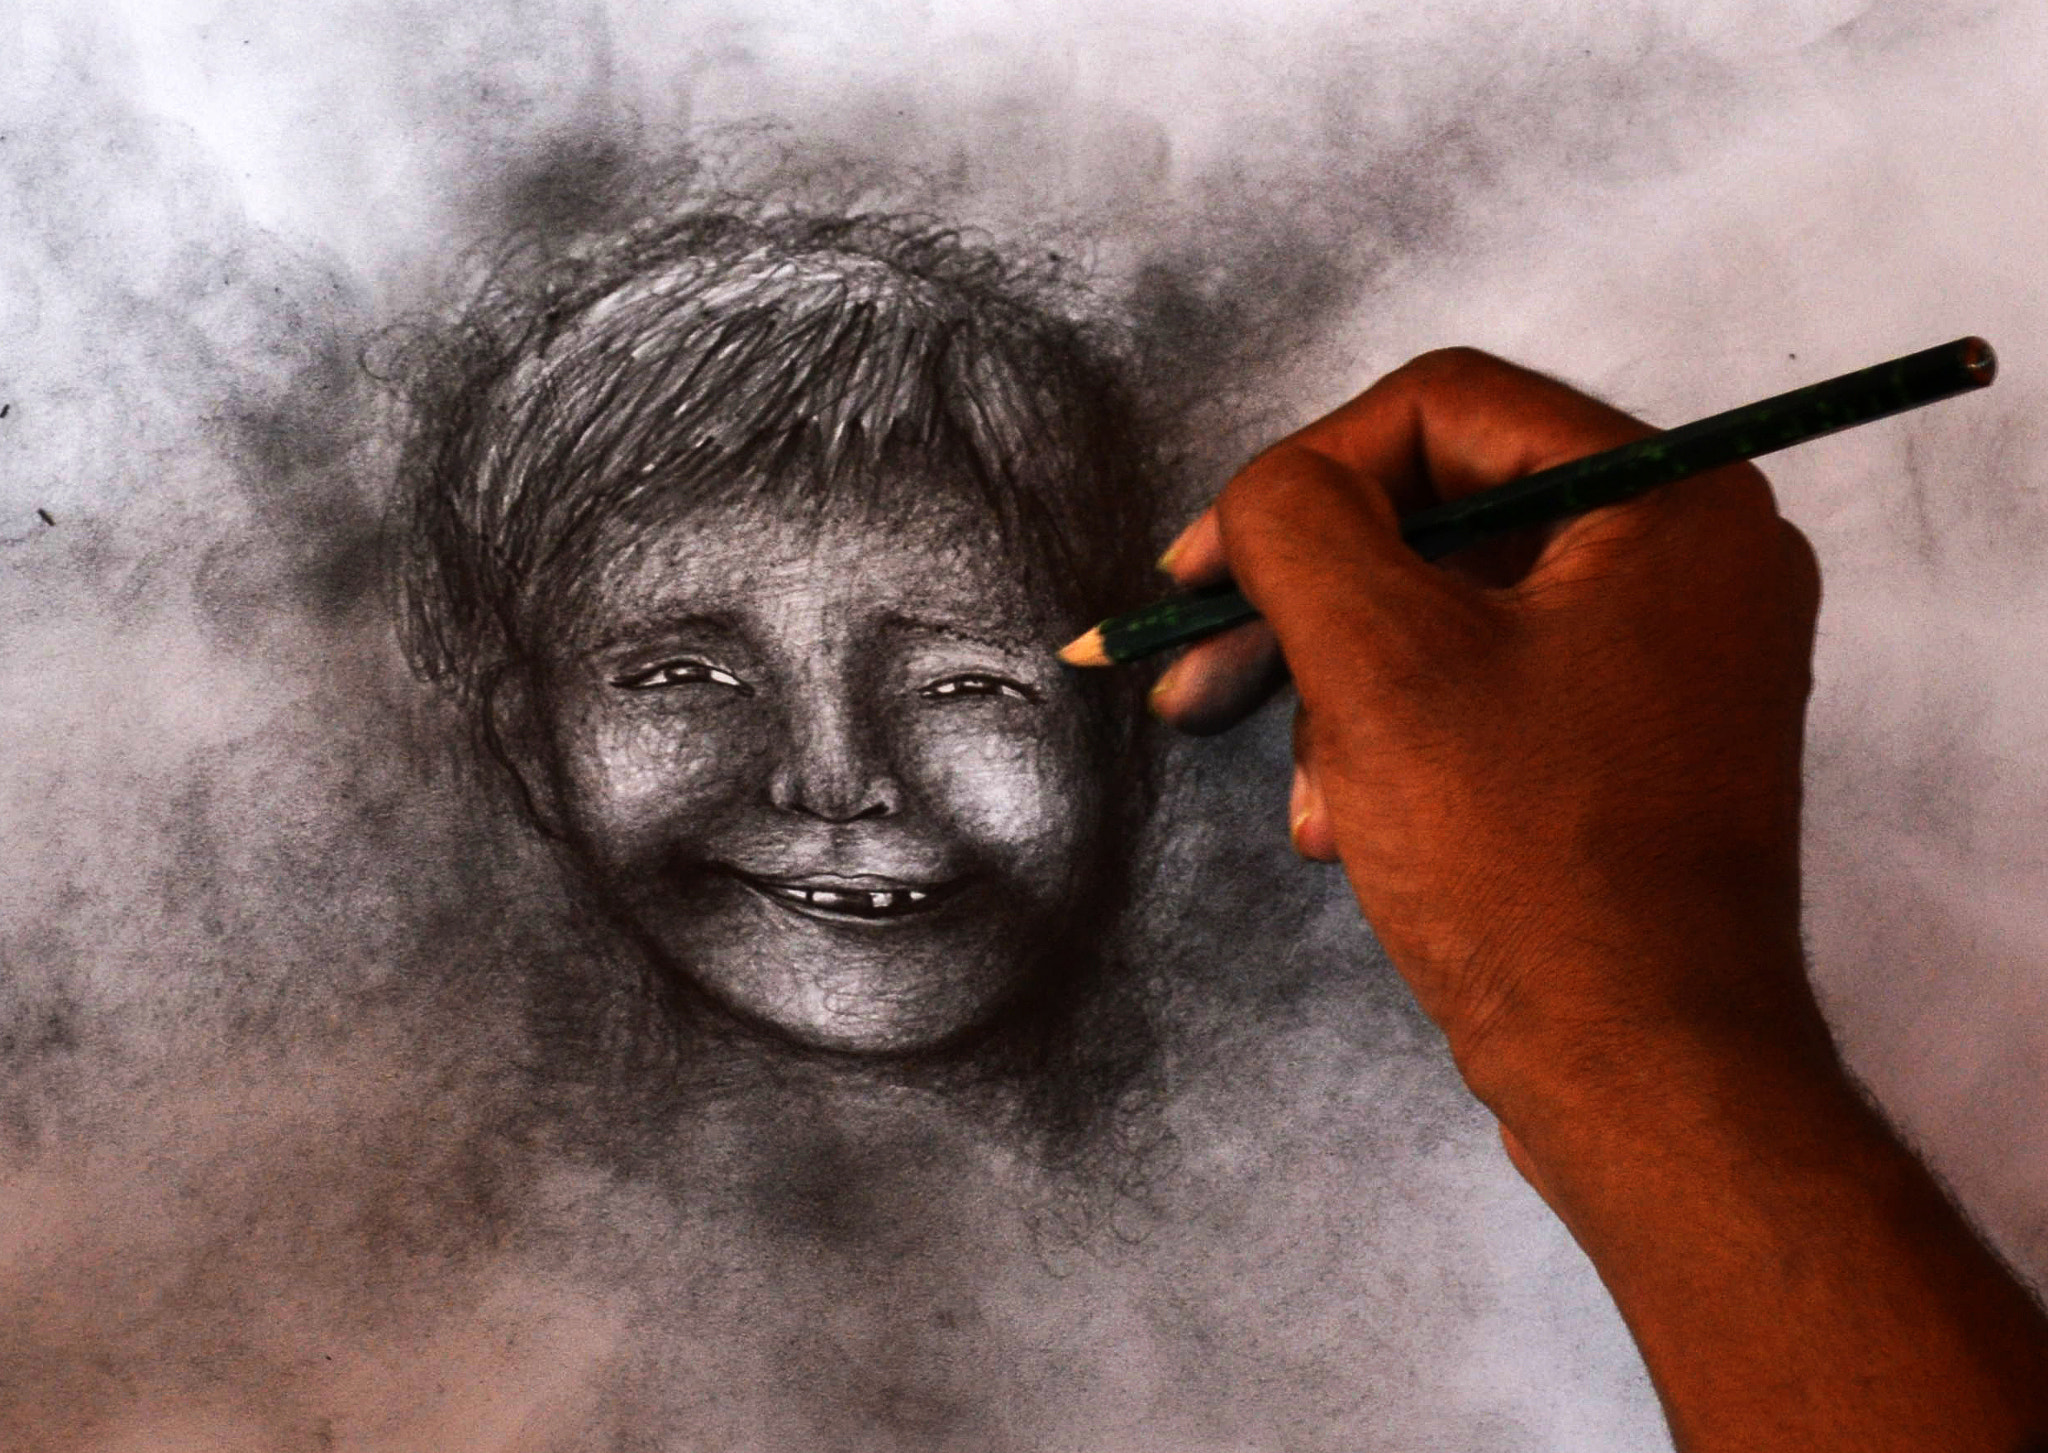 Photograph Creating Smiles by Suraj Kashyap on 500px